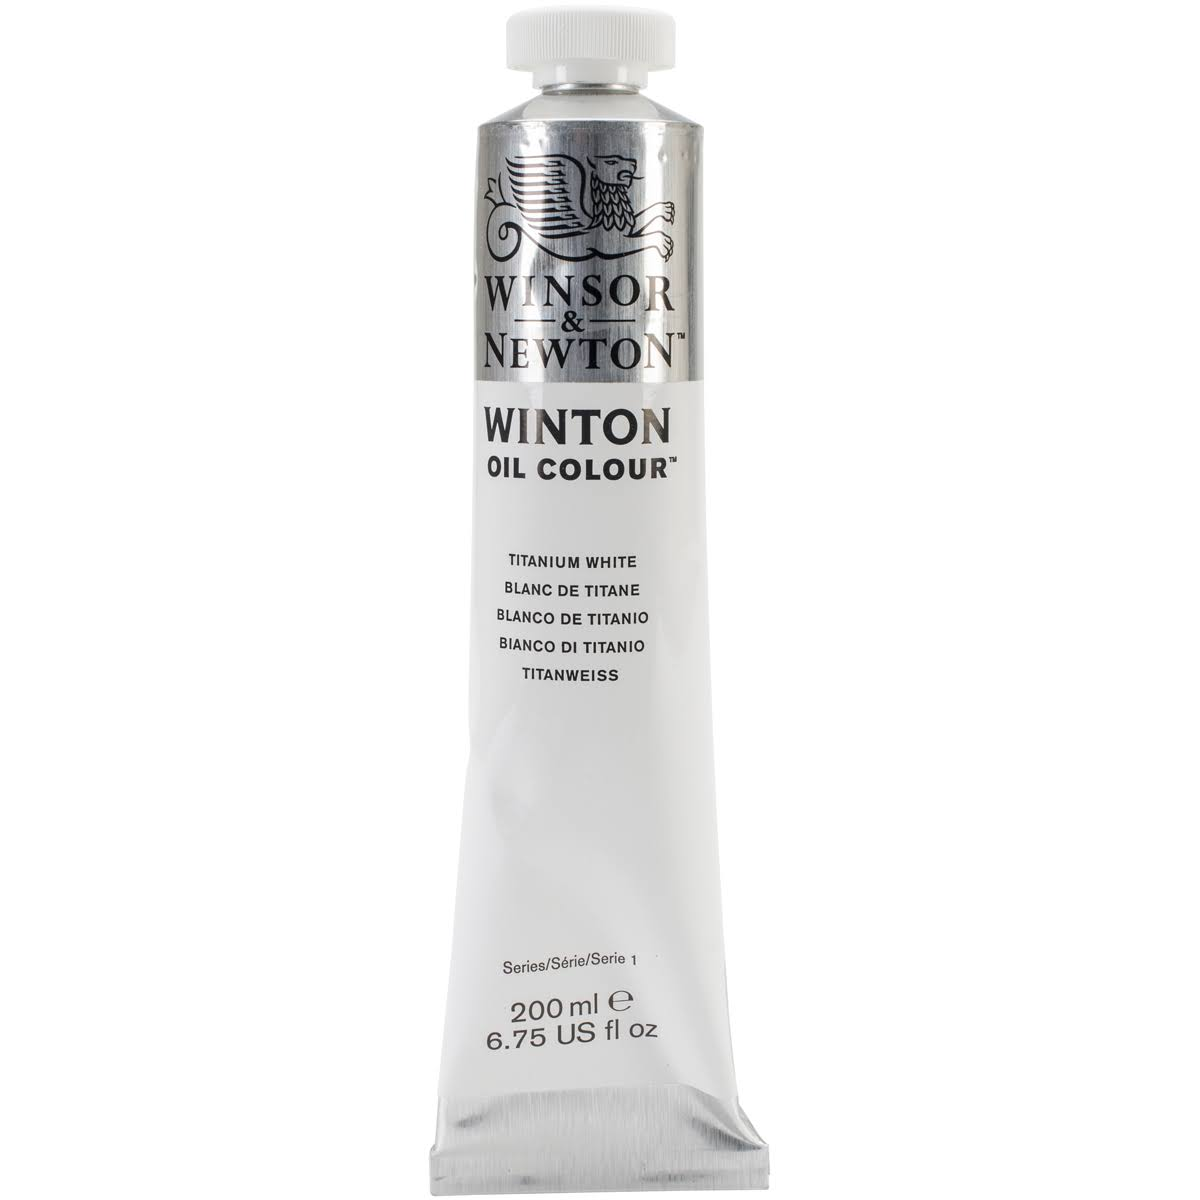 Winsor & Newton Winton Oil Colour - Titanium White